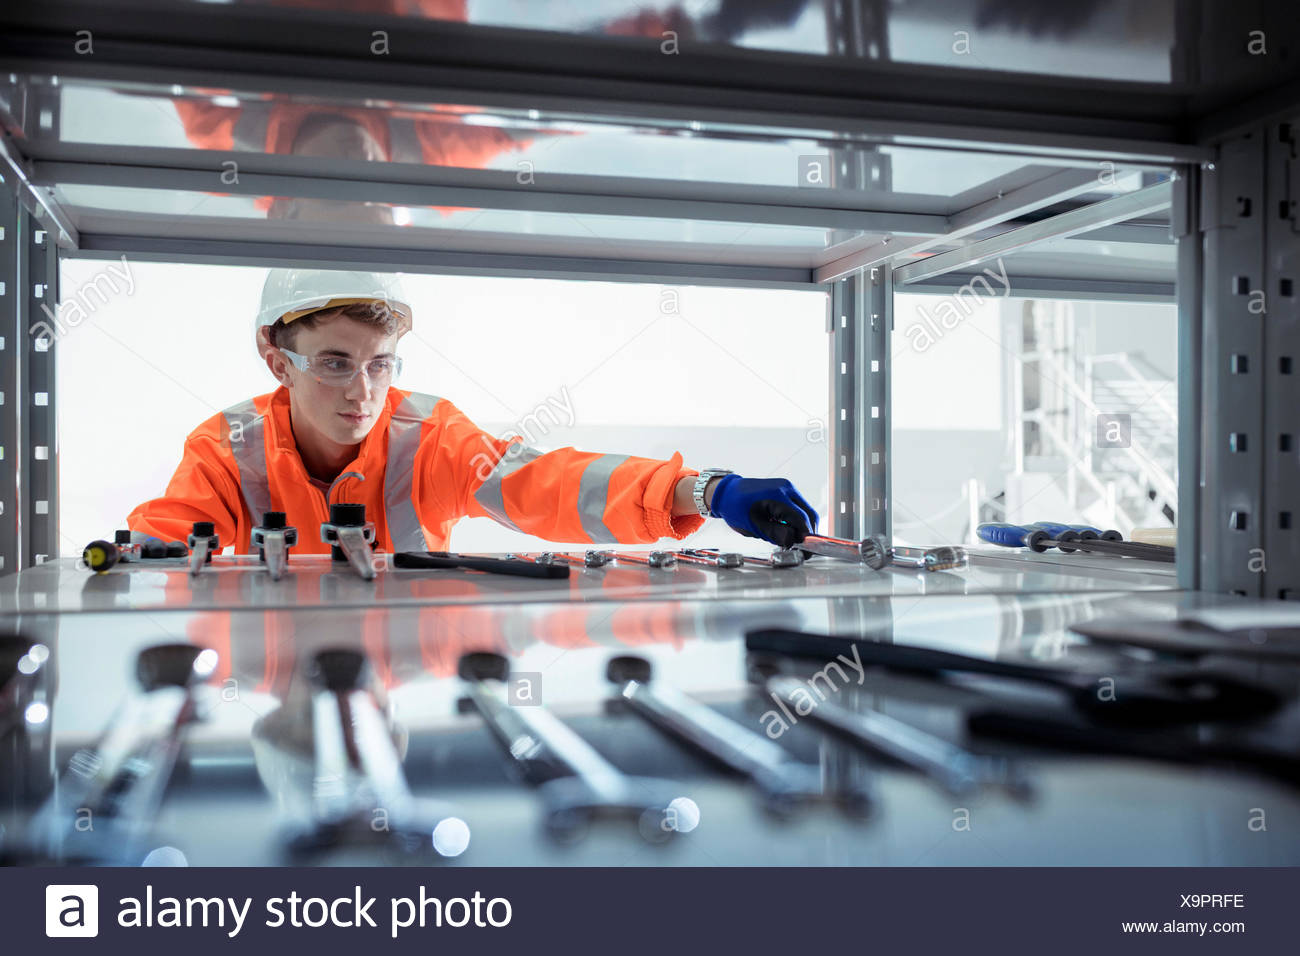 Apprentice selecting tools at railway engineering facility Stock Photo